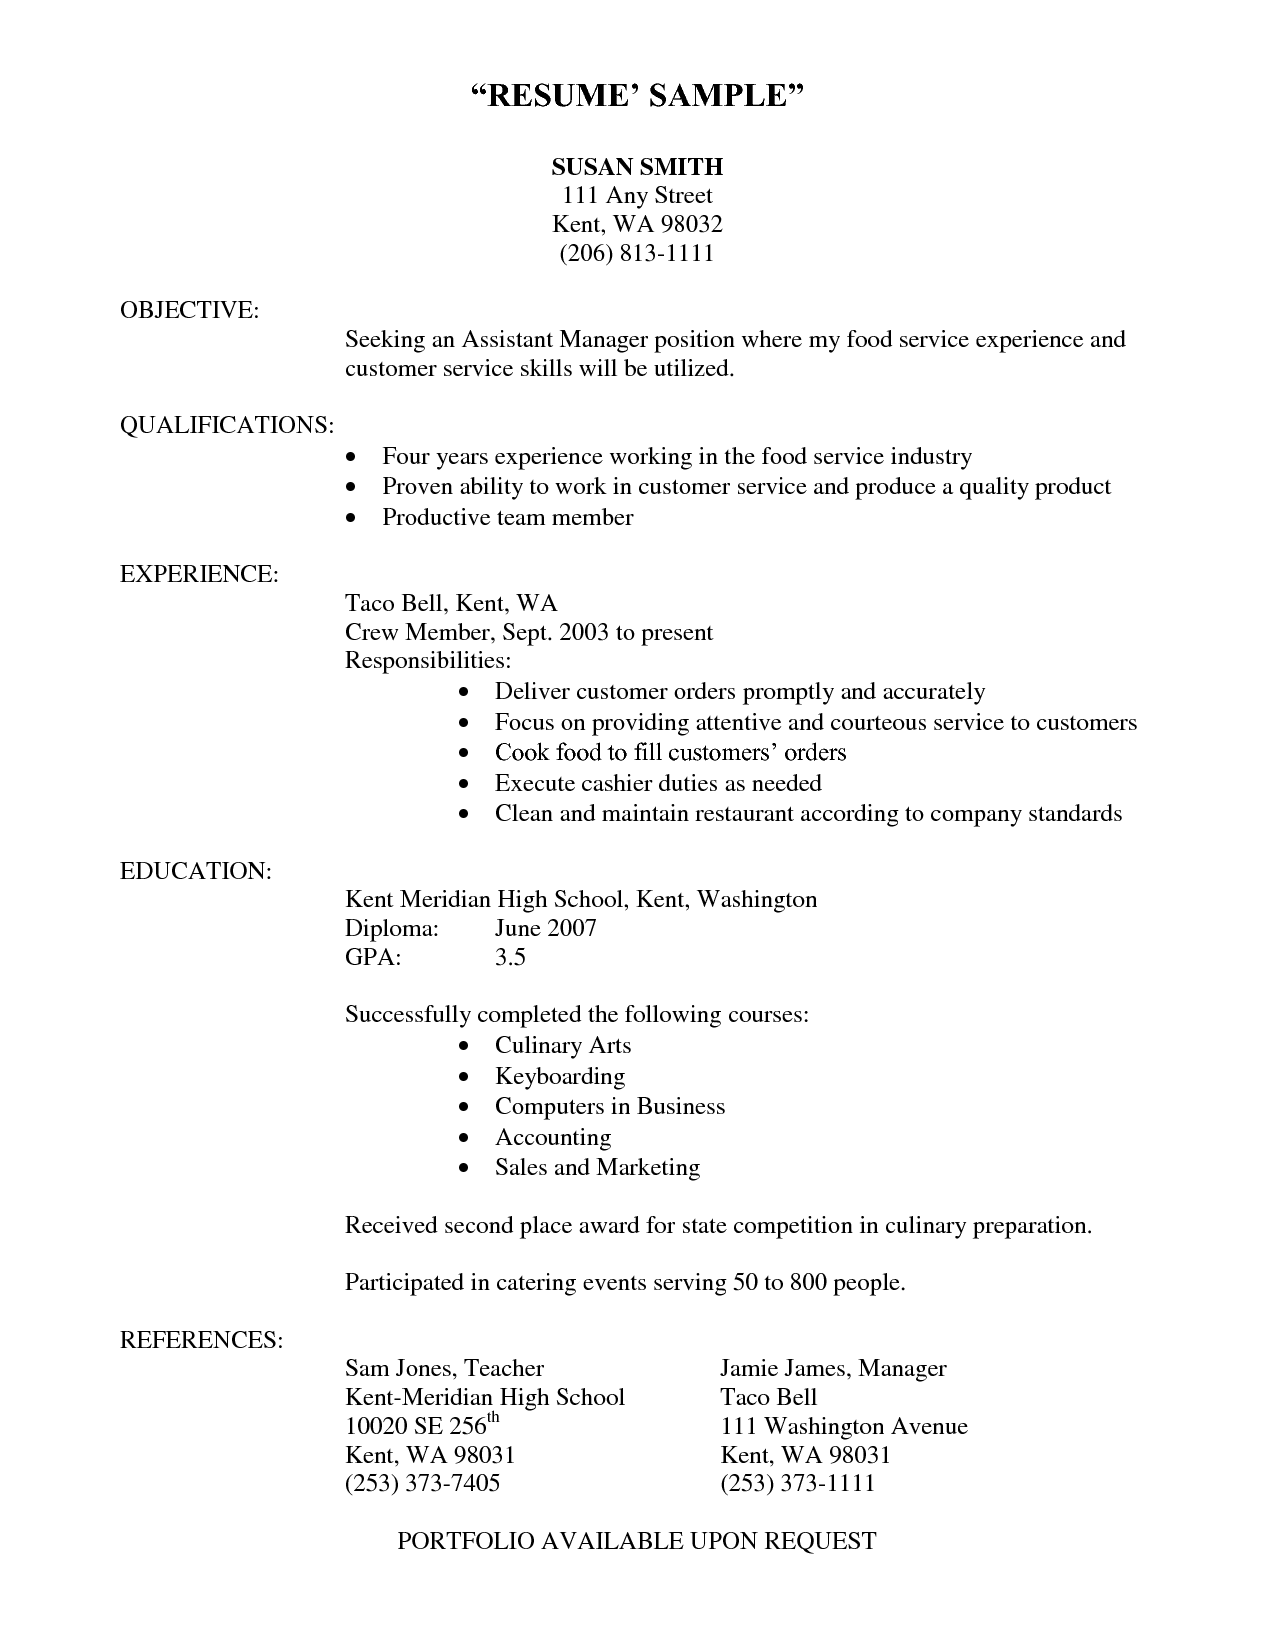 Example Qualifications Resume Homeschool Teacher Sample Skill Cover Letter  Warehouse Skills  Skills For Teacher Resume